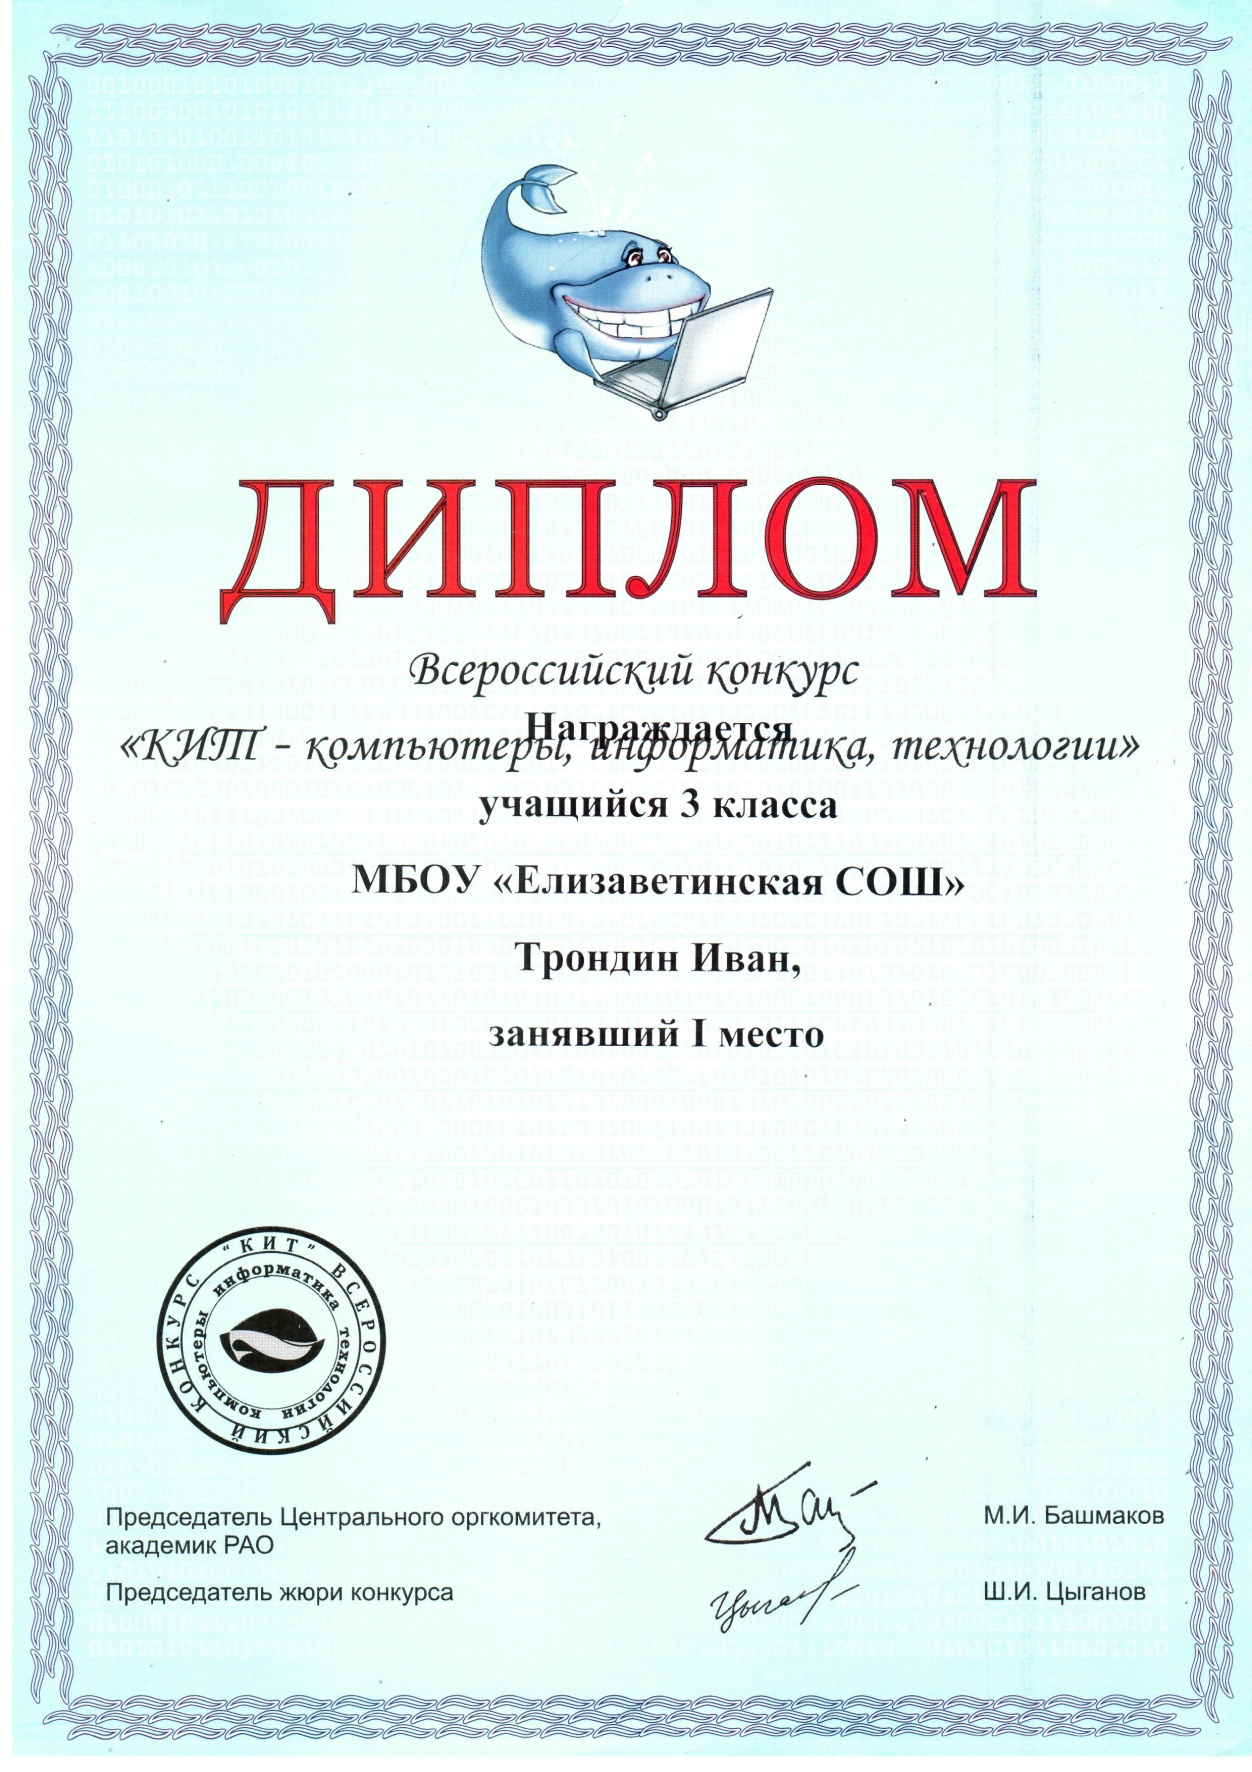 C:\Documents and Settings\User.USER-A1DBA845B9\Мои документы\Файлы Mail.Ru Агента\sergei_752@mail.ru\helios84@mail.ru\ков0001.jpg